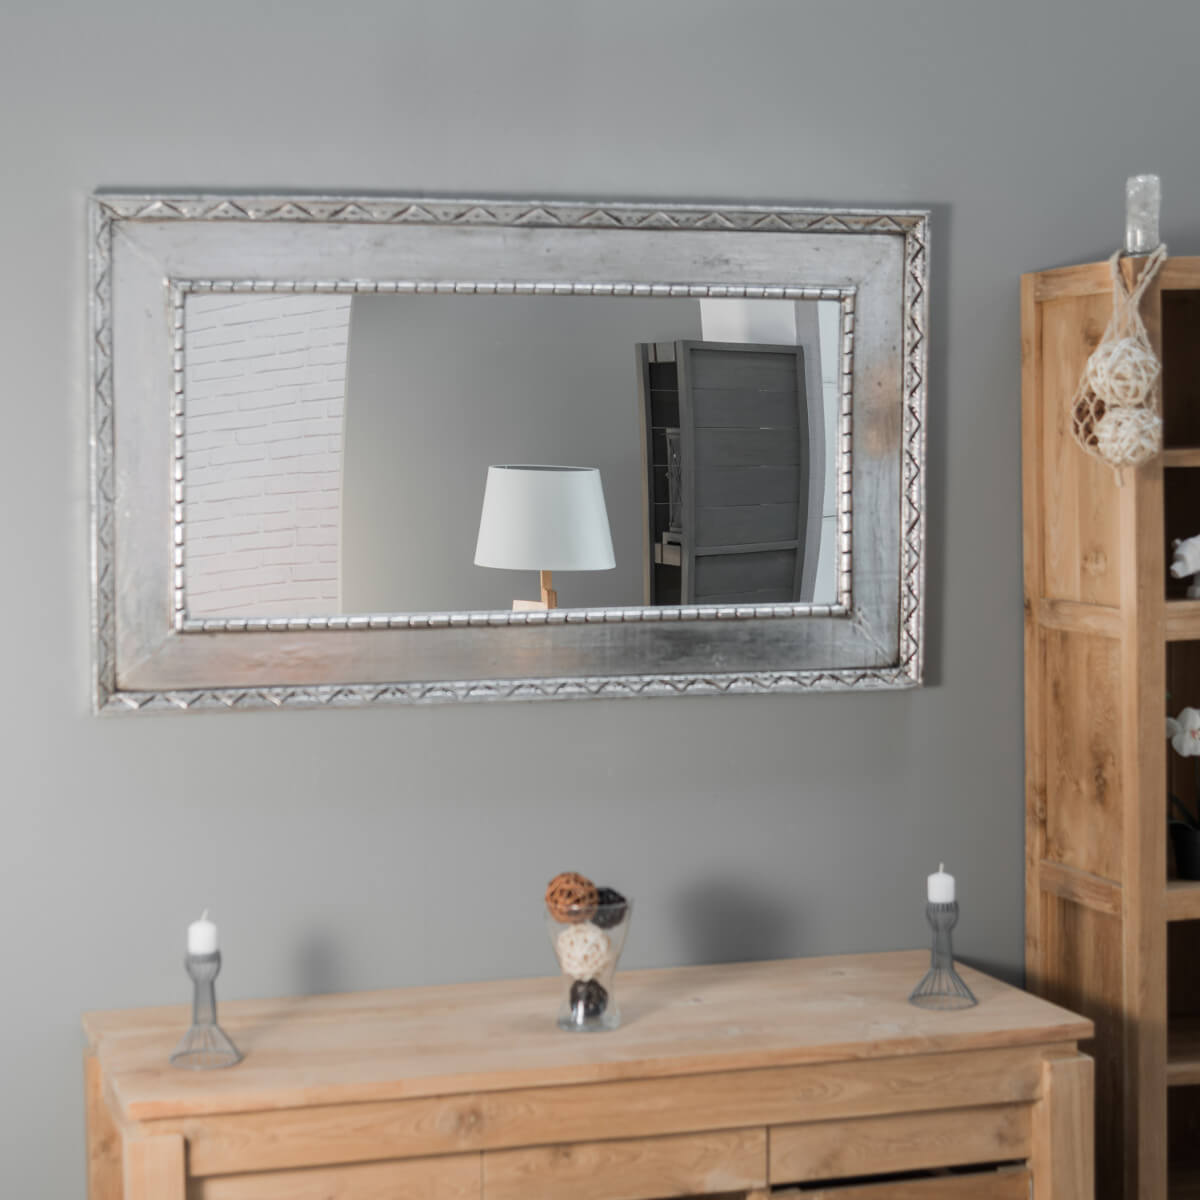 miroir palerme en bois patin argent 140cm x 80cm. Black Bedroom Furniture Sets. Home Design Ideas